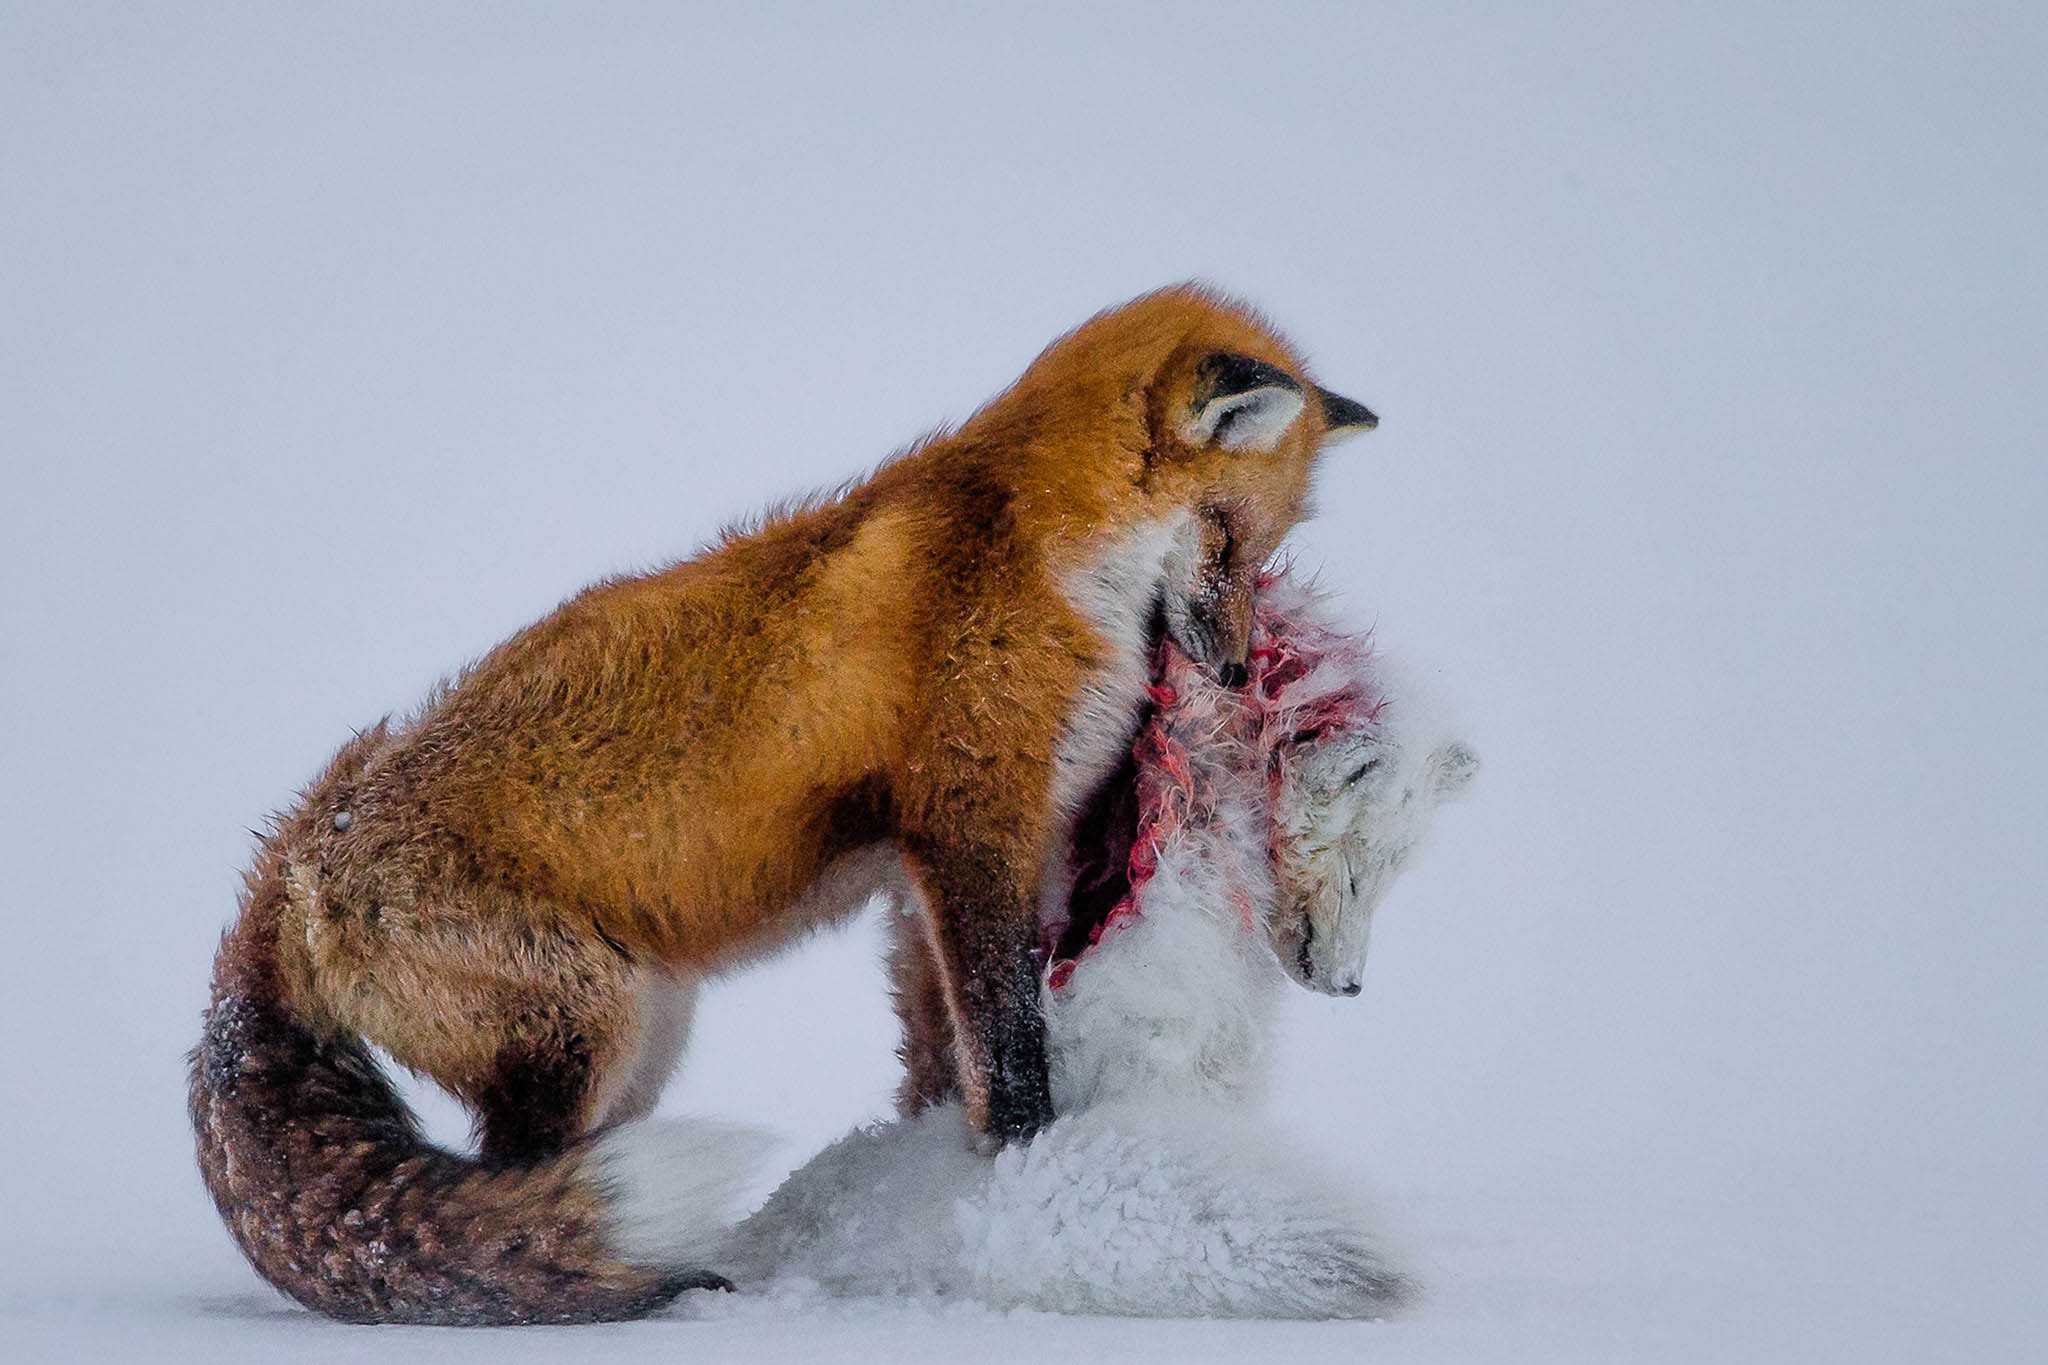 9-hunger-wildlife-photography-by-don-gutoski